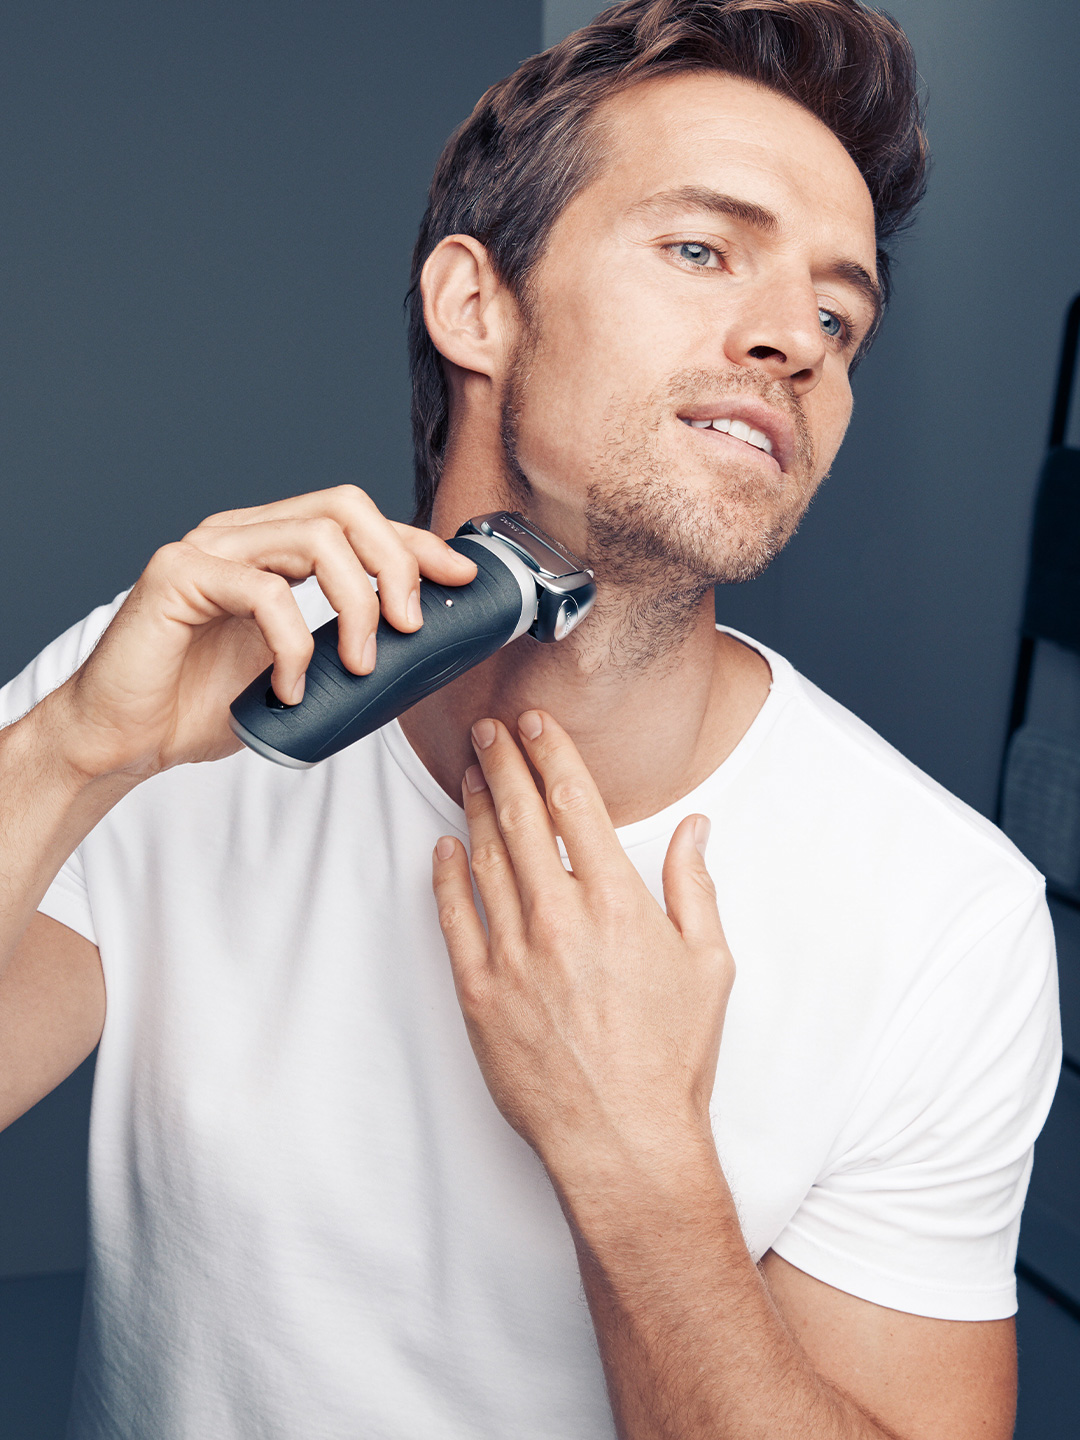 Electric Series 7 Shavers for Men | Braun